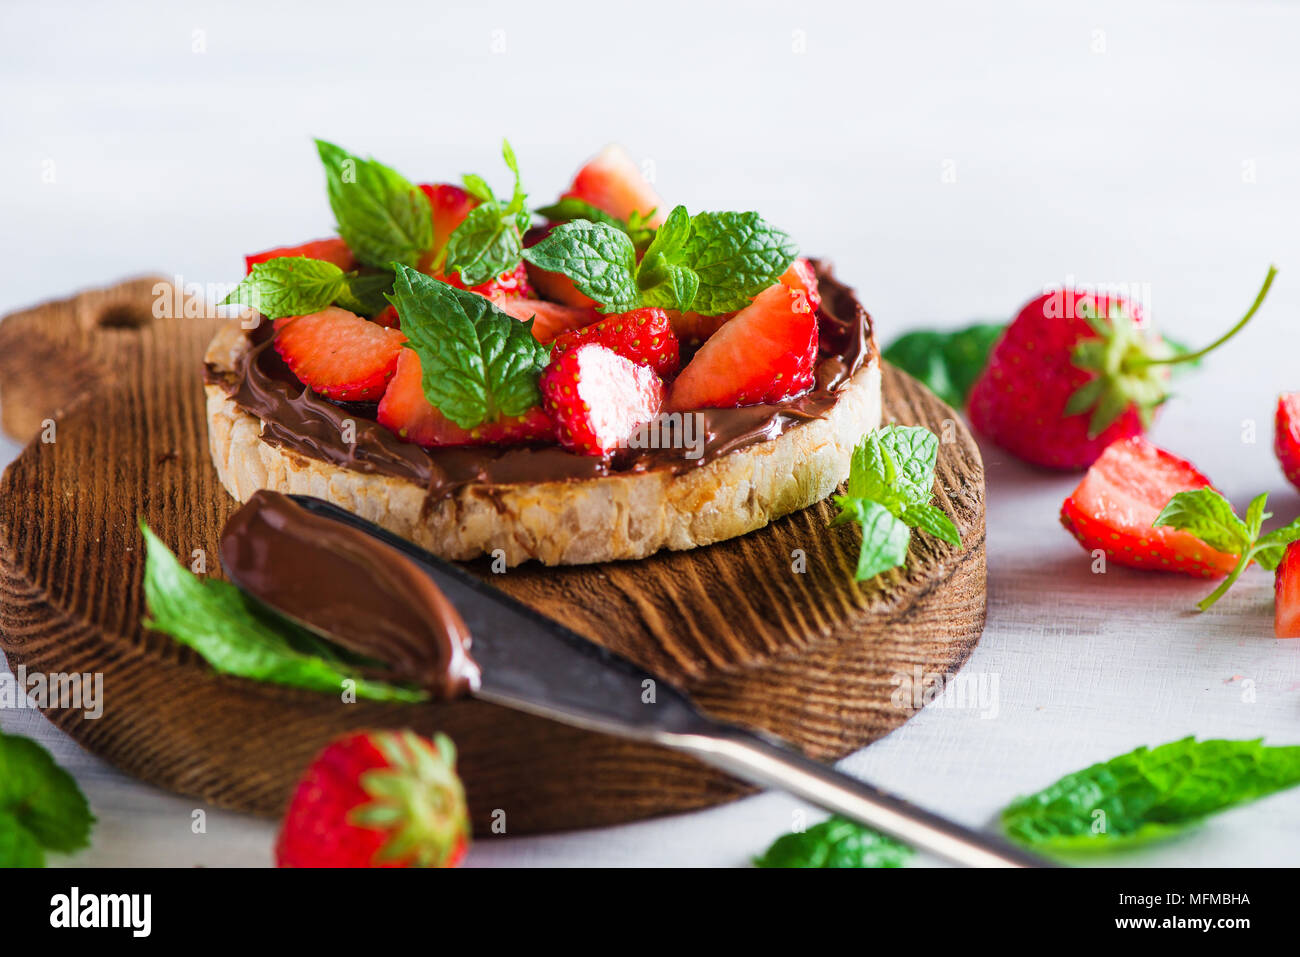 Crisp bread healthy snack with fresh strawberries, chocolate spread, mint leaves on a round cutting board with a dessert knife. Easy breakfast close-u Stock Photo